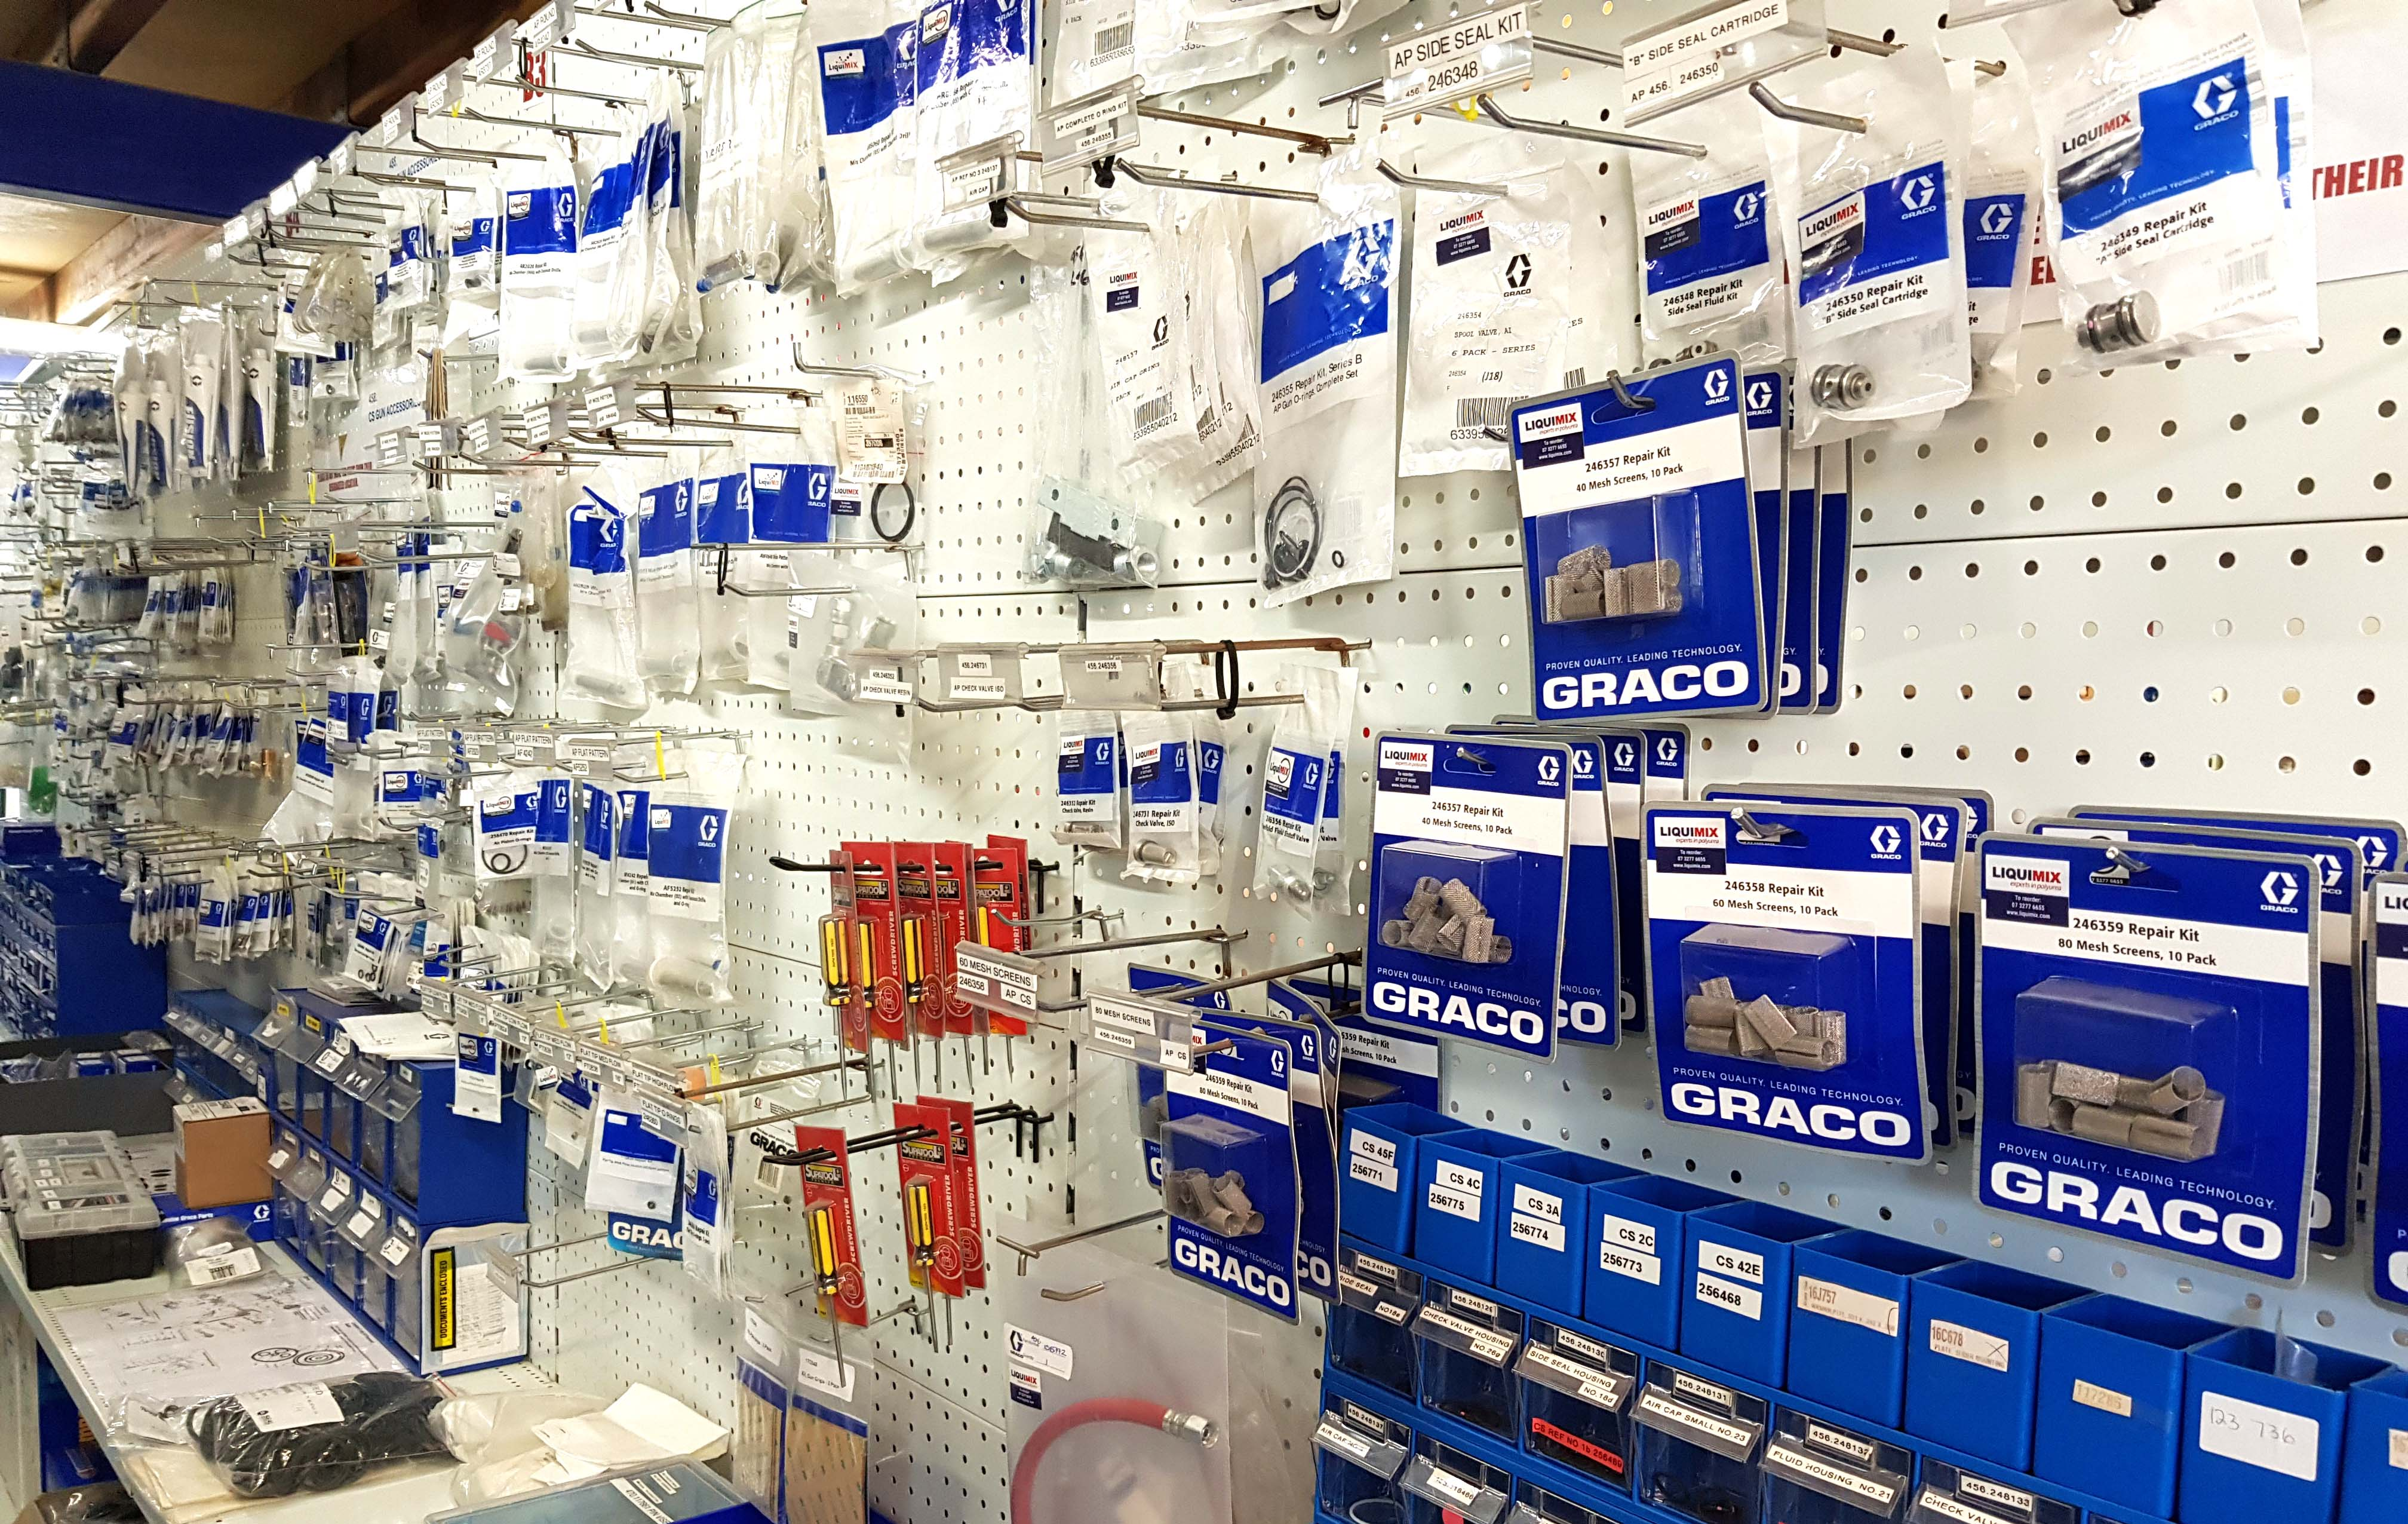 LiquiMix Shop stocks the largest range of spare Graco parts